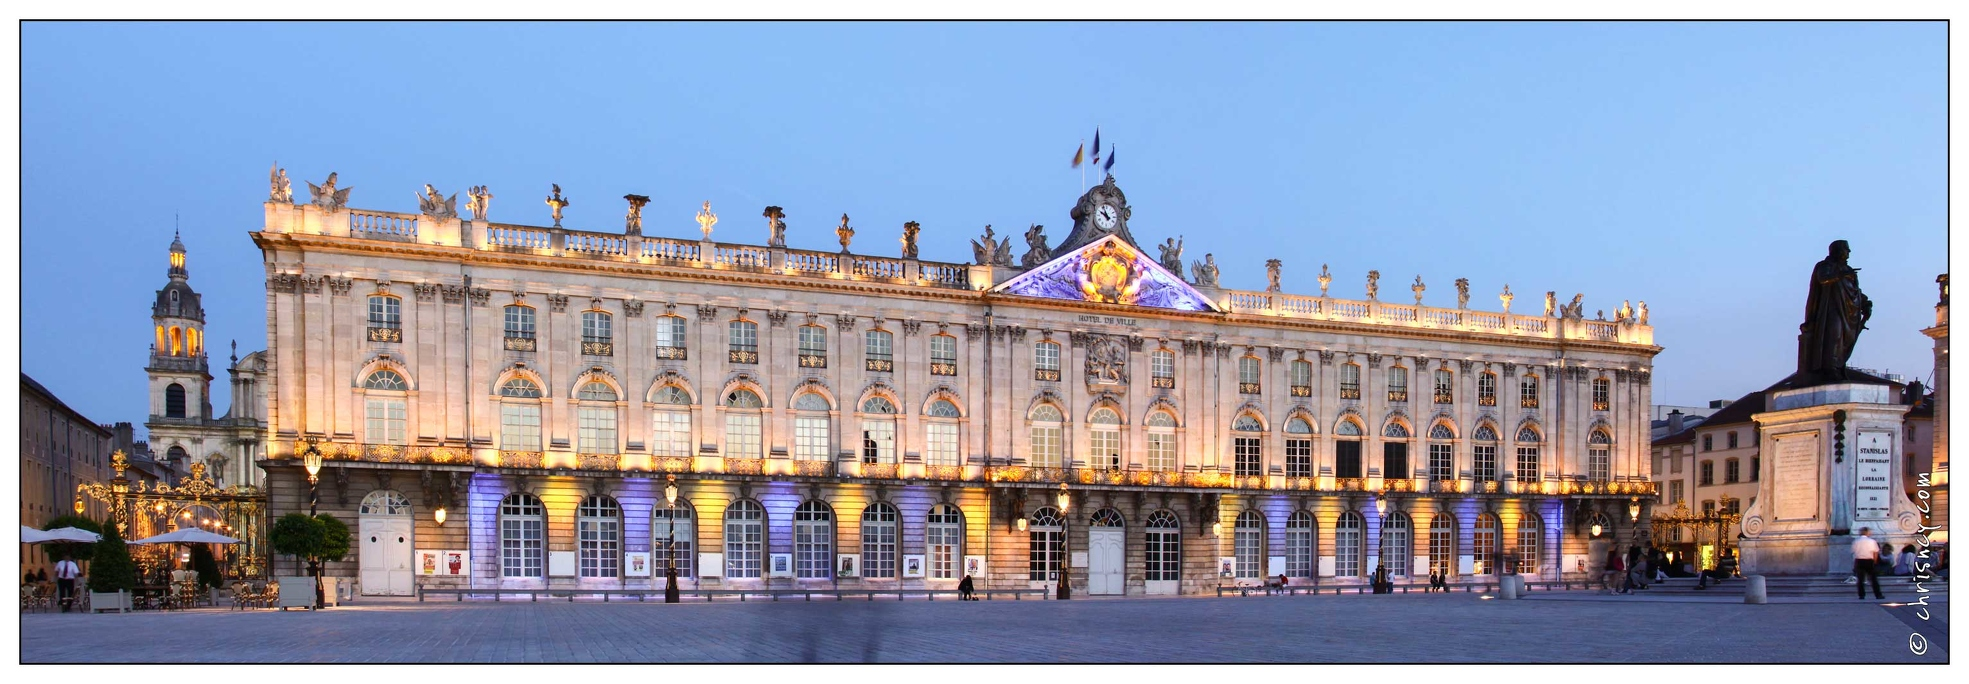 20090602-09 1825-Place Stanislas Nancy pano